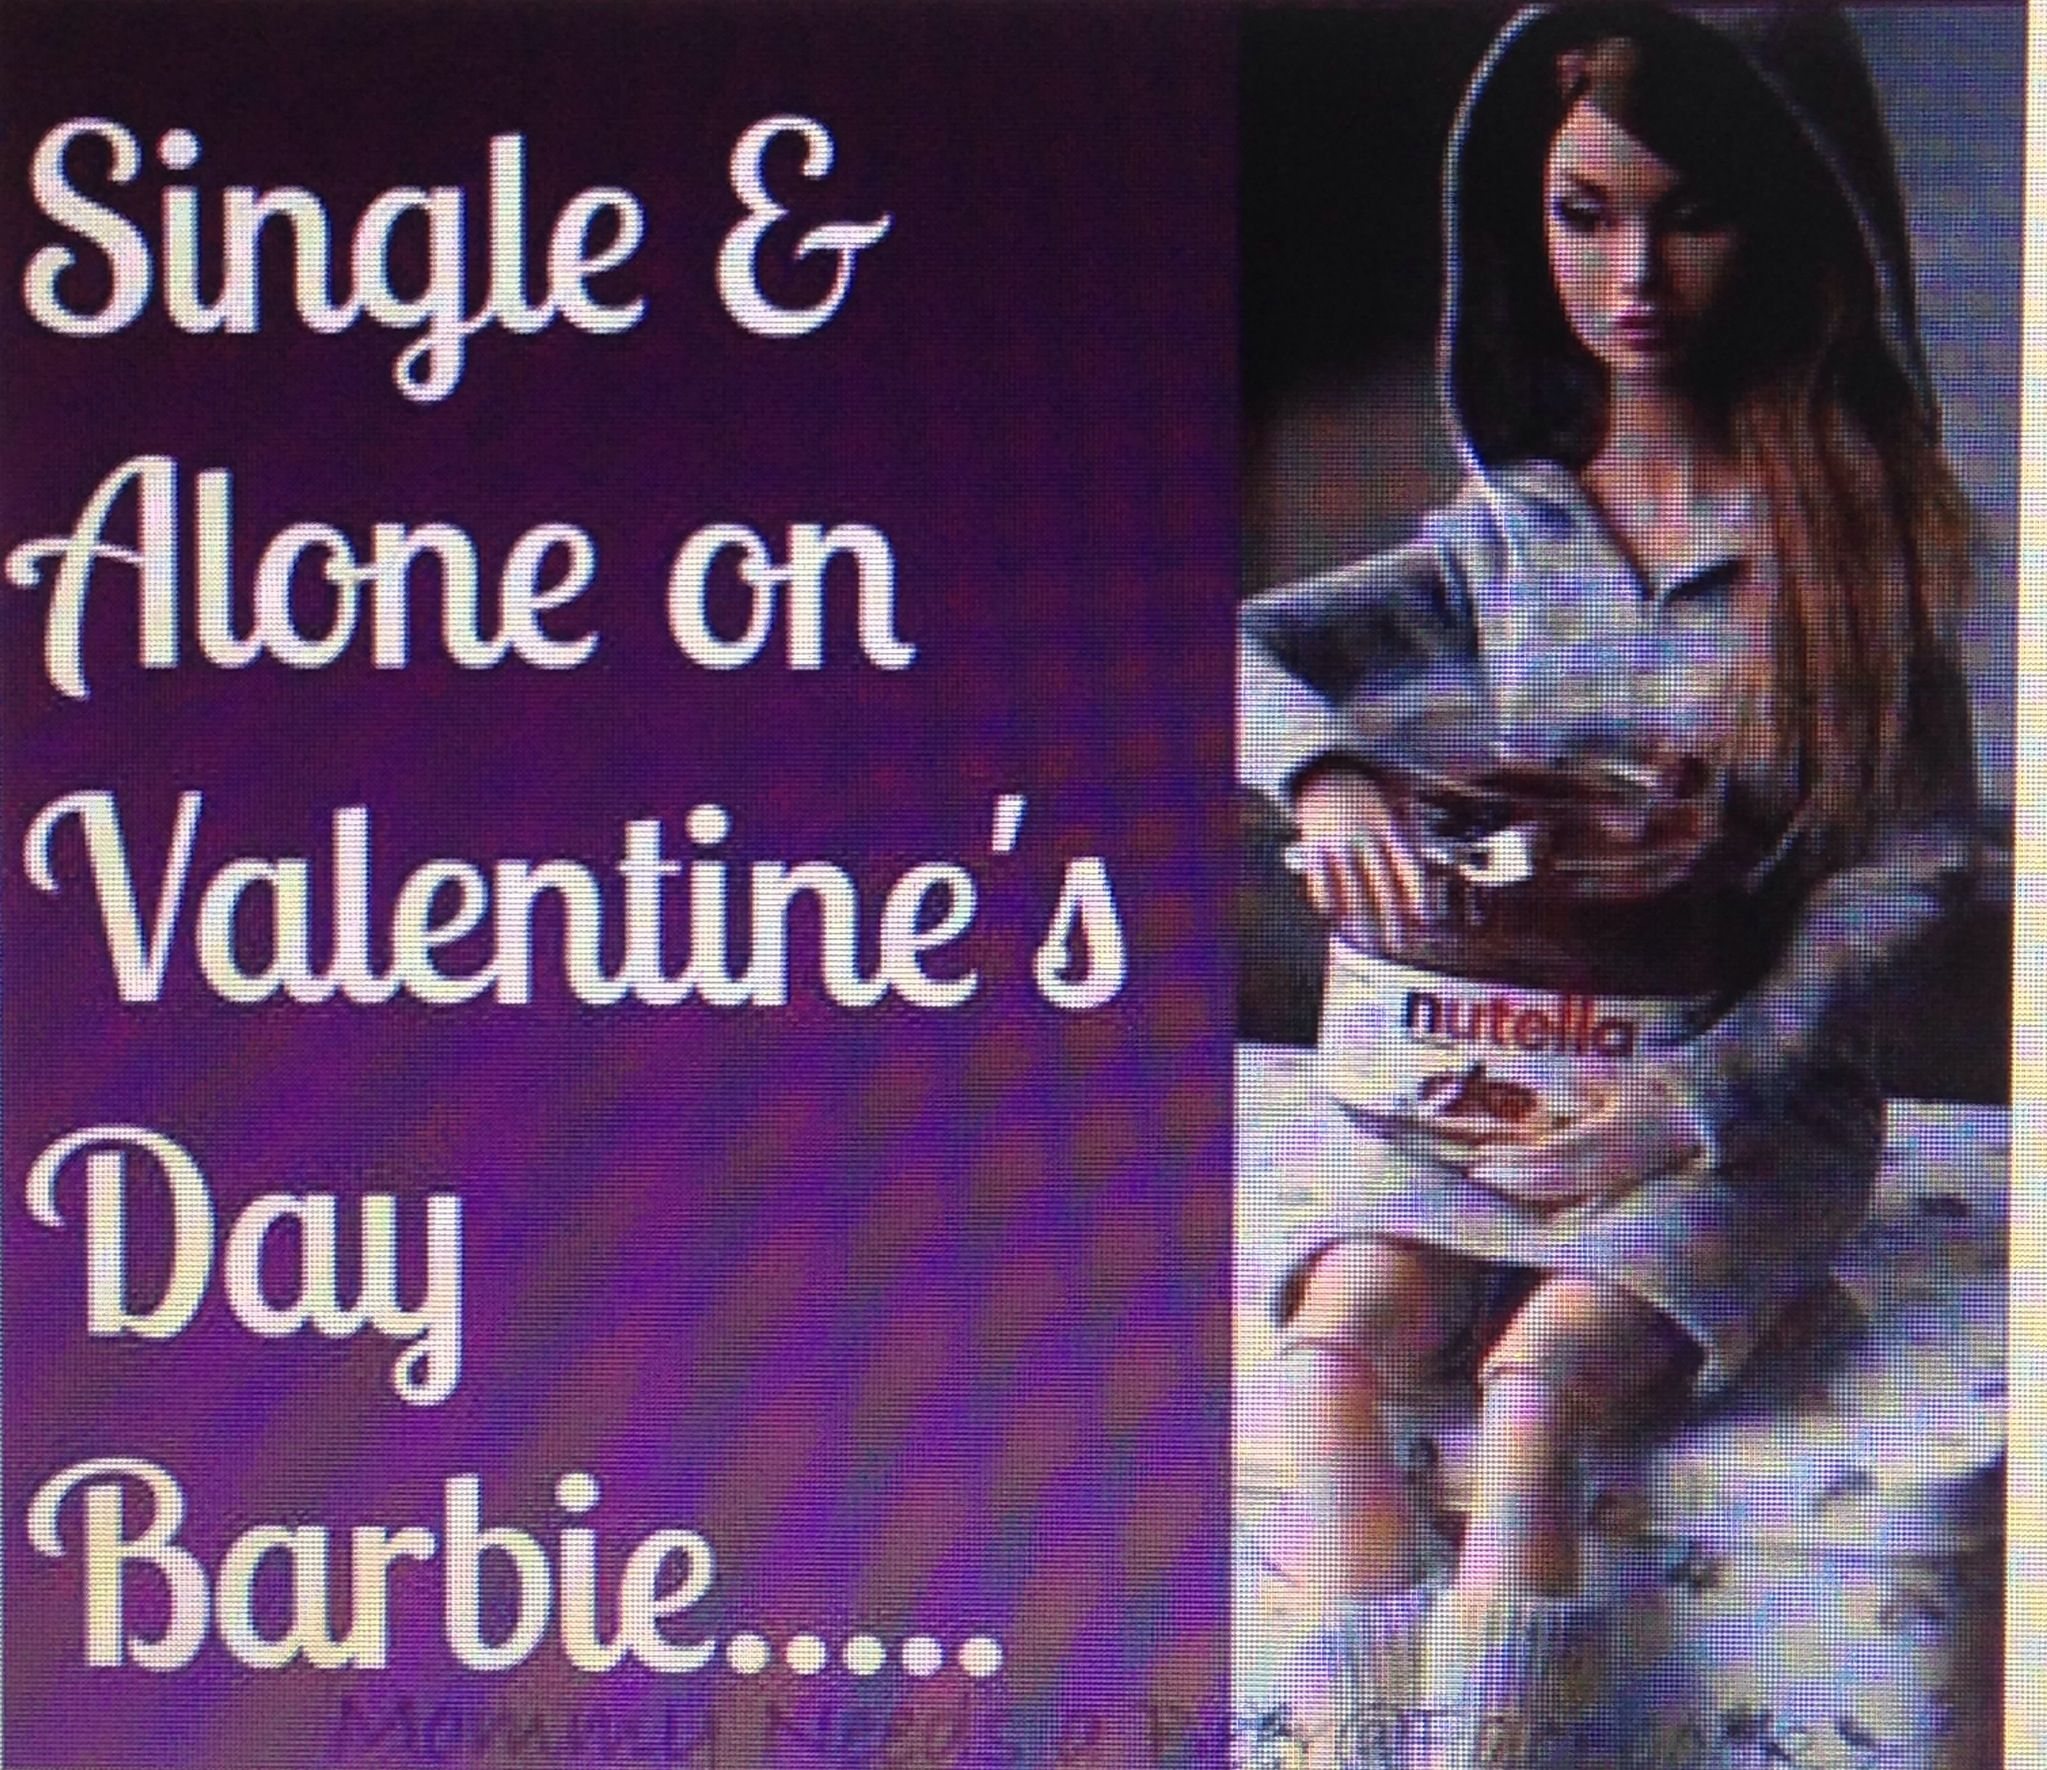 Valentines Day Single Alone Funny Lol Humor Funny Quotes Single Humor Haha Funny